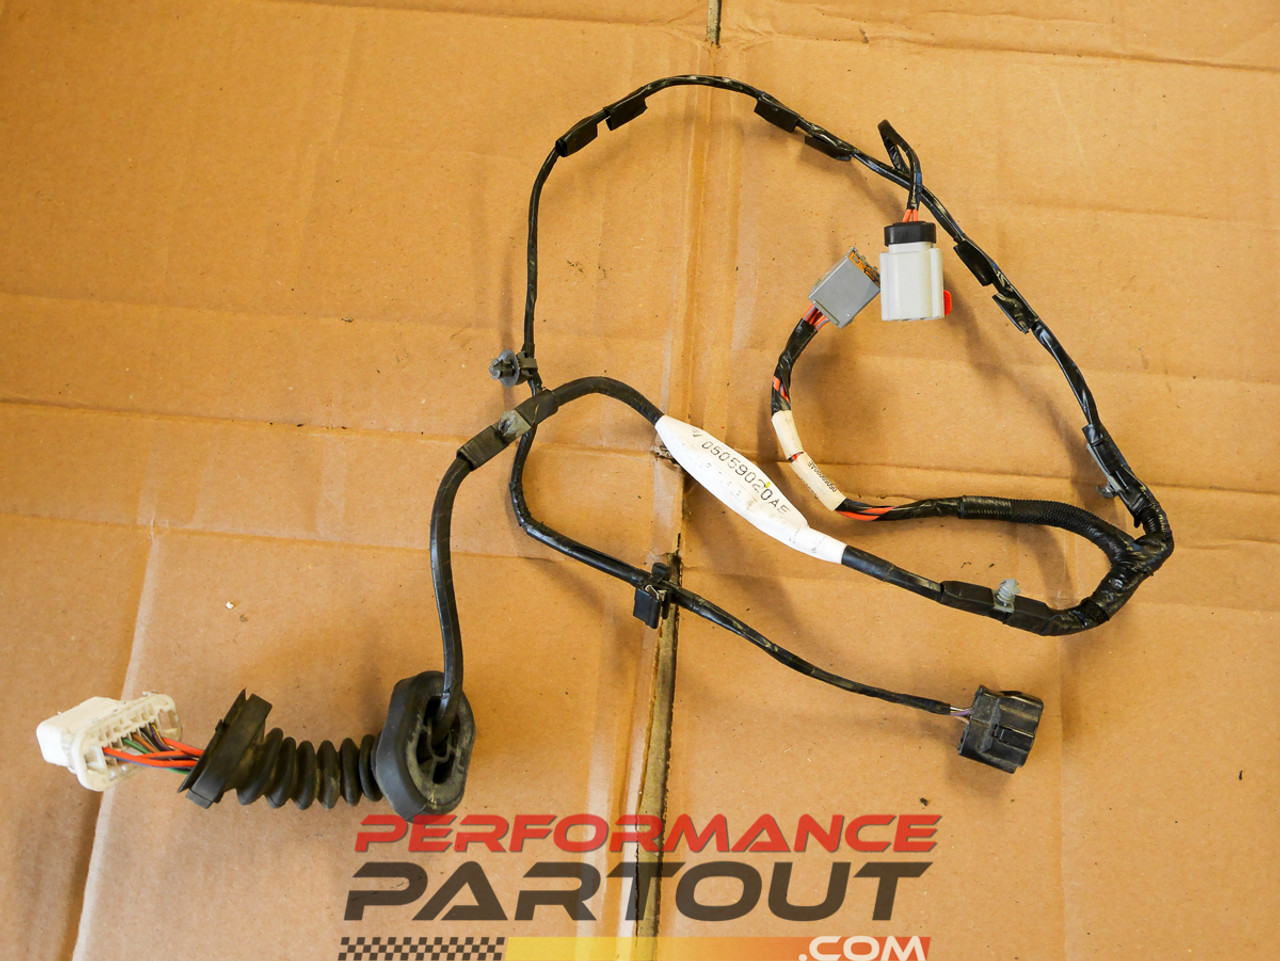 Wiring harness rear door magnum charger 300 2005-2010 - Performance PartoutPerformance Partout